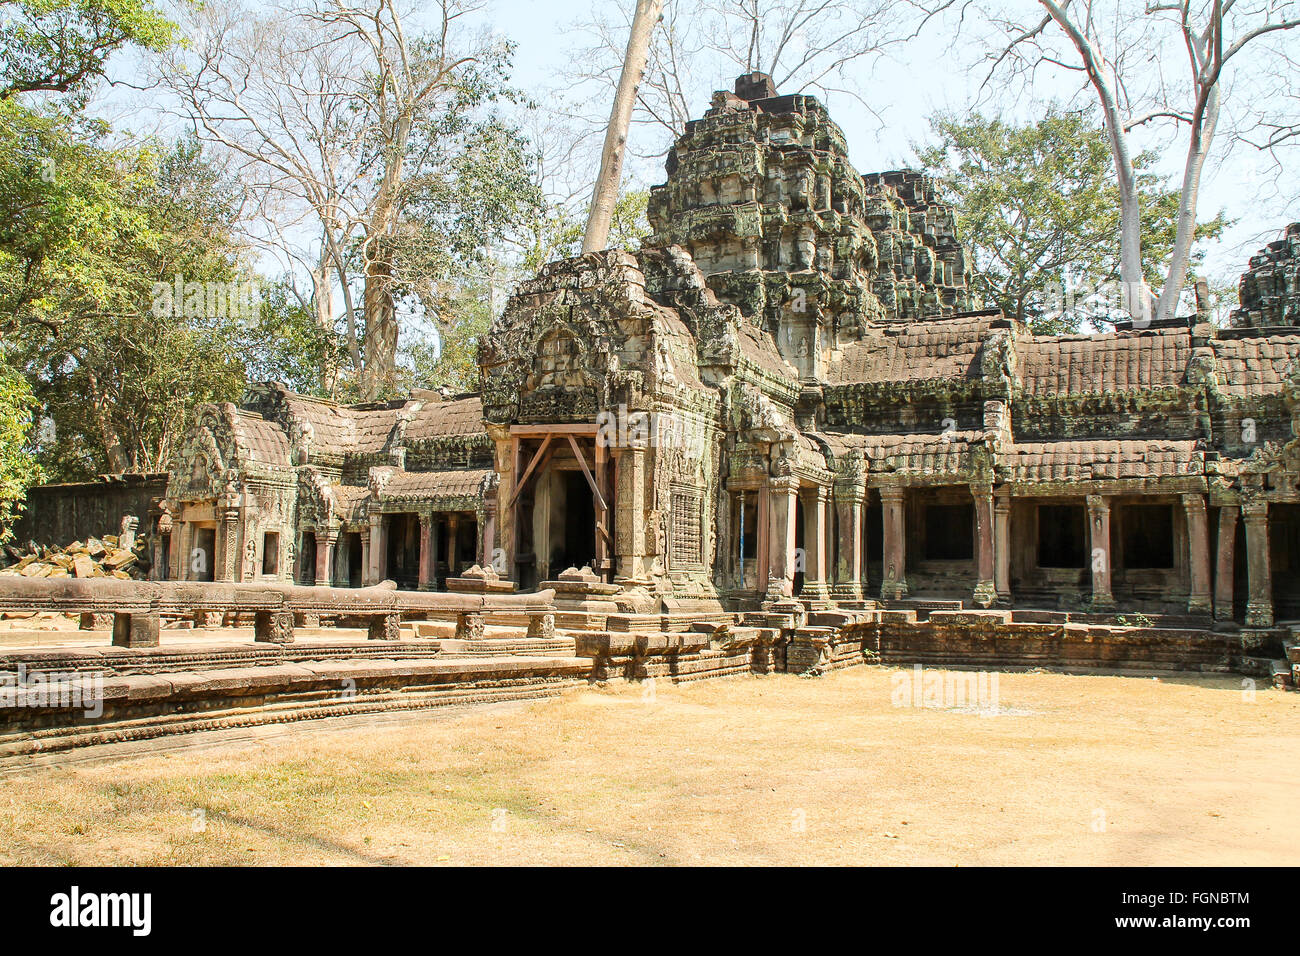 Landscape view of the overgrown structures with trees coming through the building at Angkor Wat, Siem Reap Cambodia - Stock Image